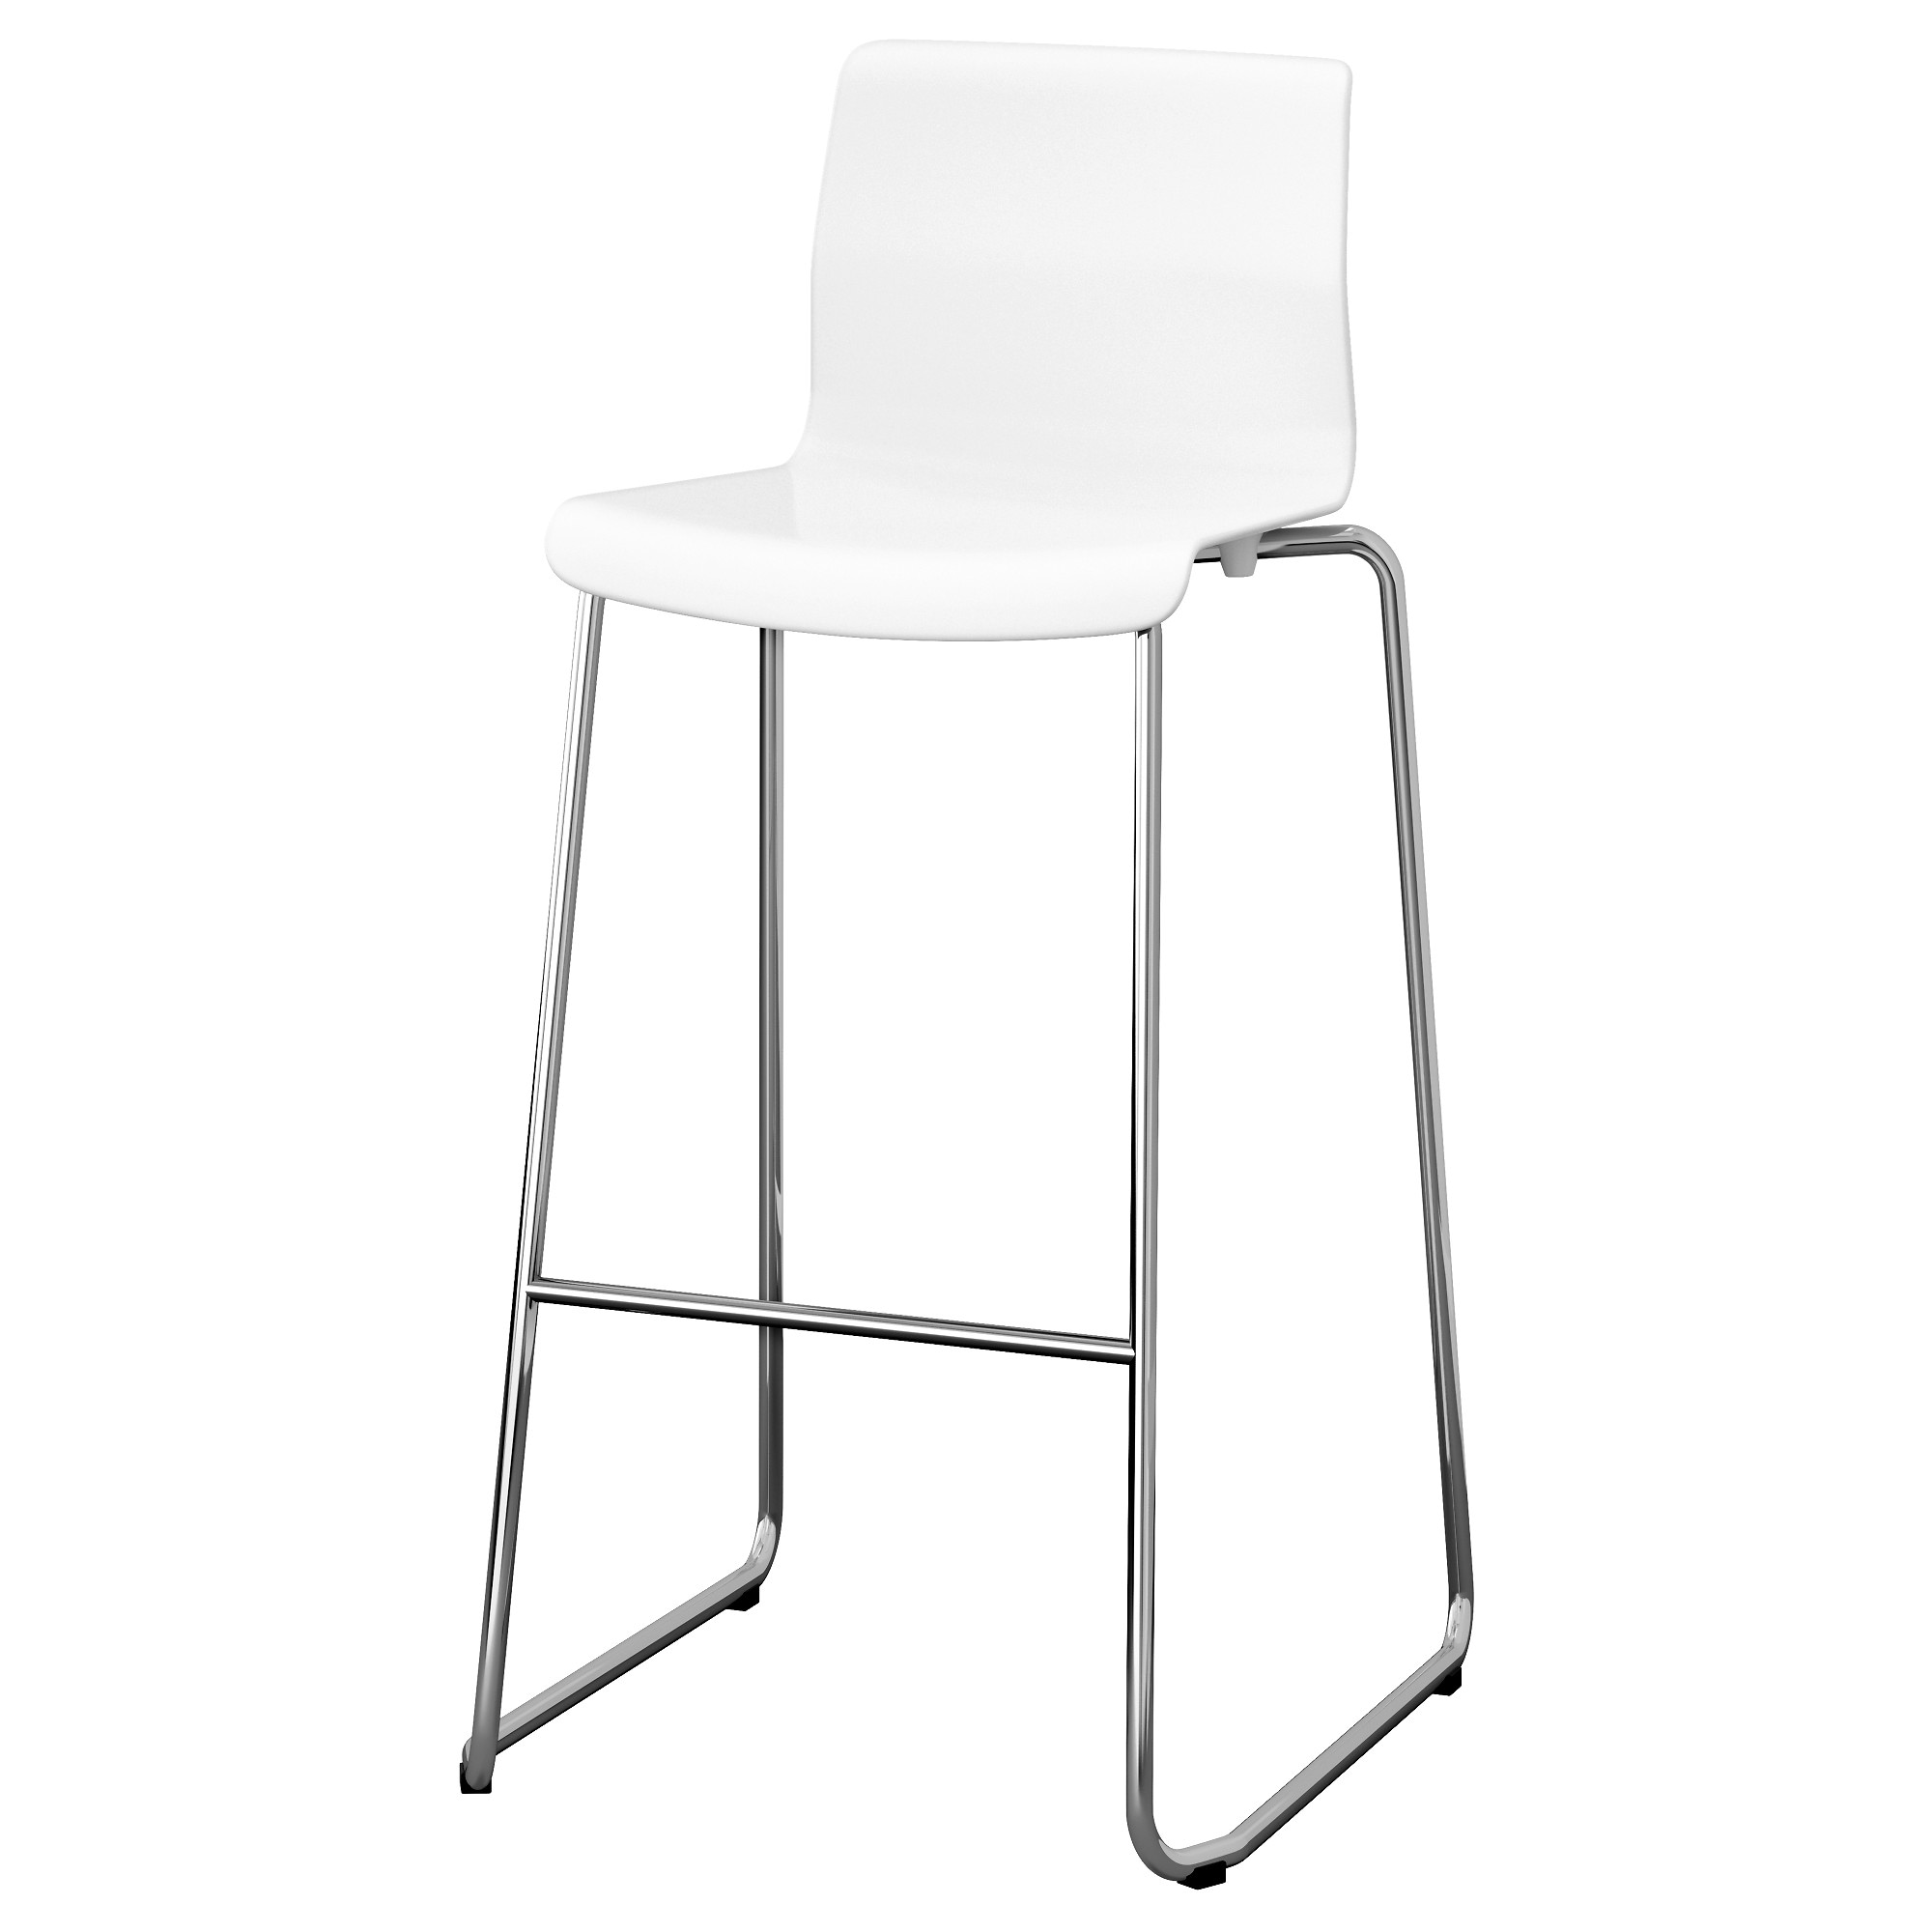 en stools henriksdal products ikea us with backrest gray stool bar catalog